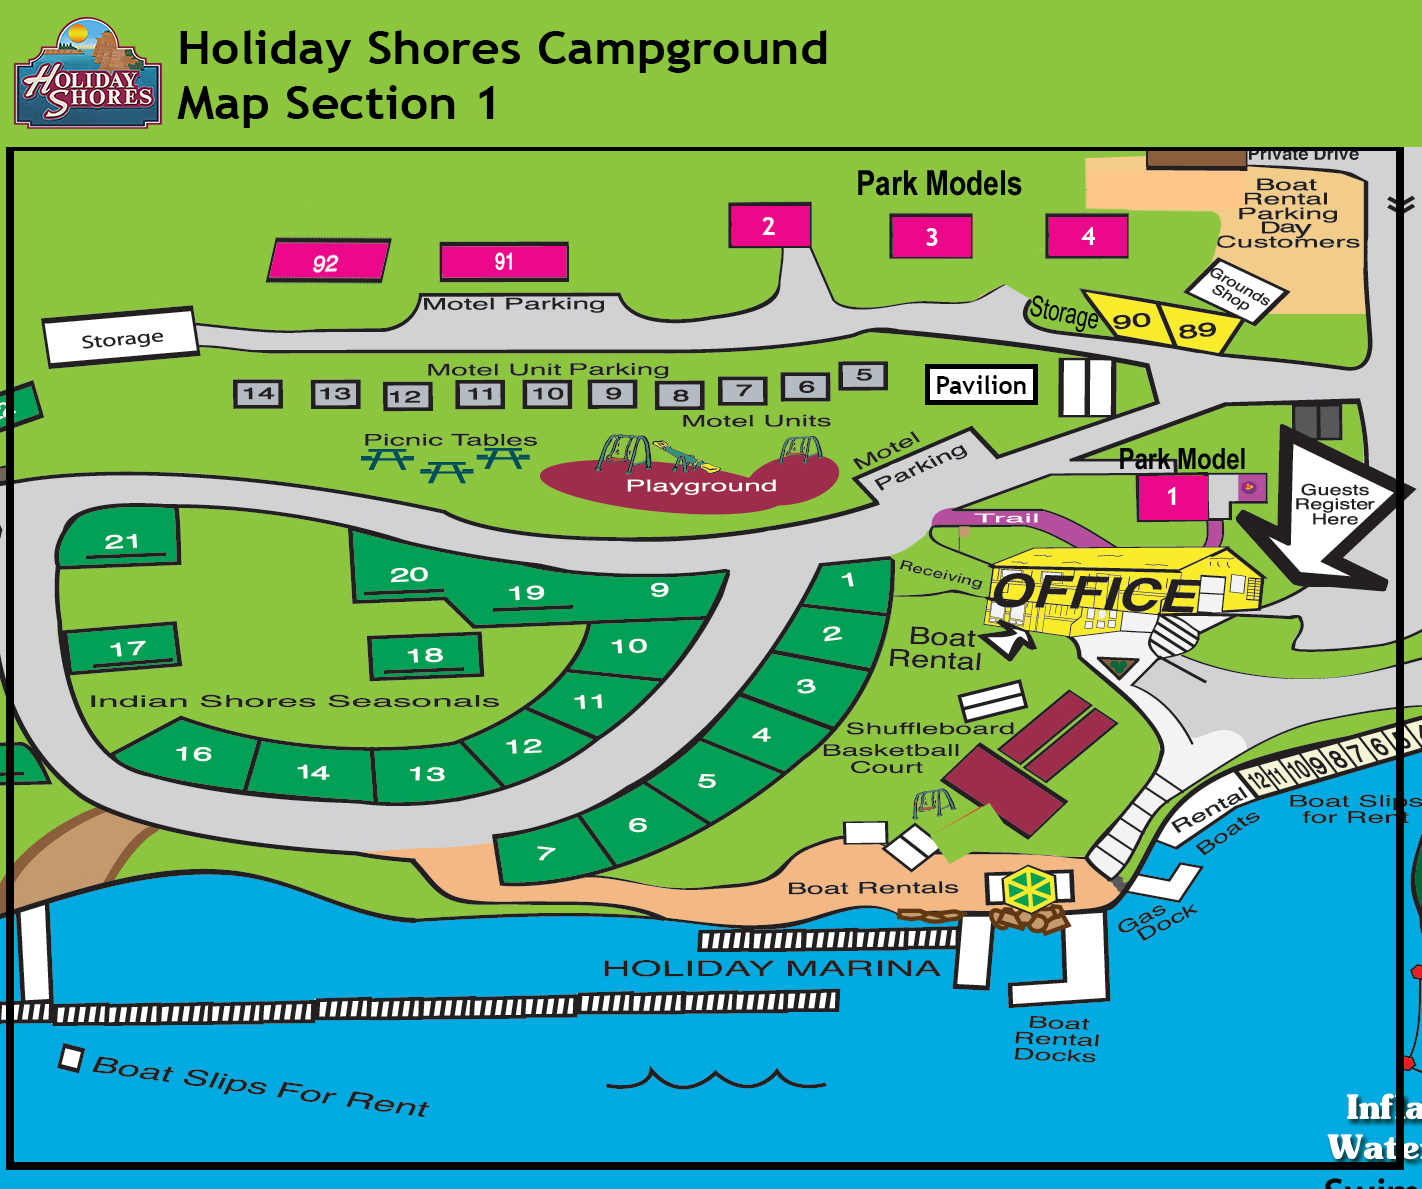 Resort Map Section 1